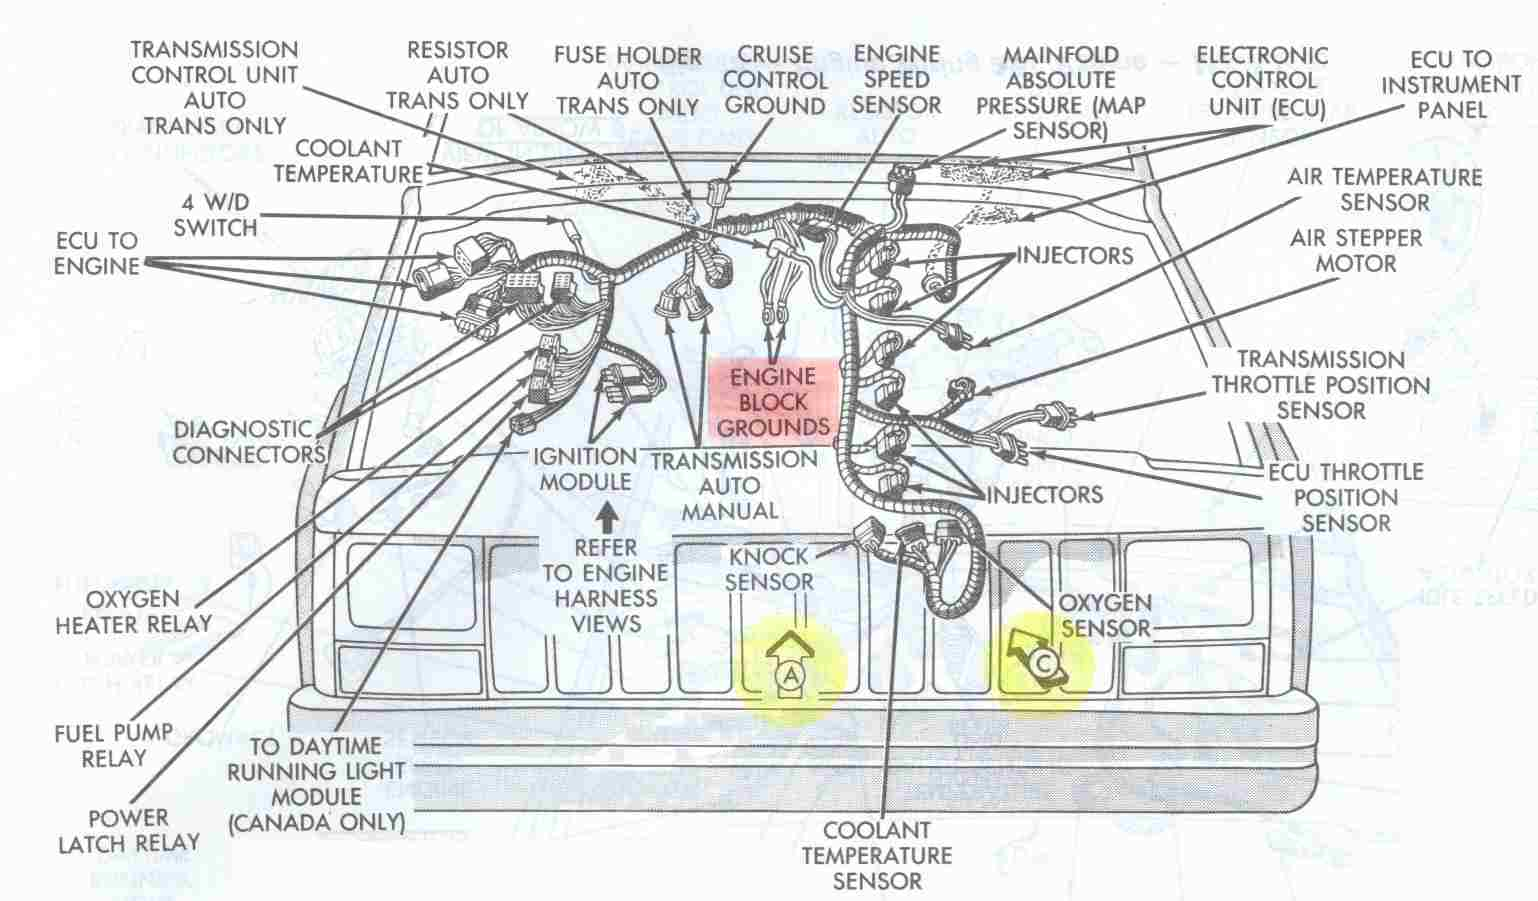 Electrical_Engine_Ground_Points_Overview jeep cherokee electrical diagnosing erratic behavior of engine 2001 jeep cherokee wiring harness at mr168.co